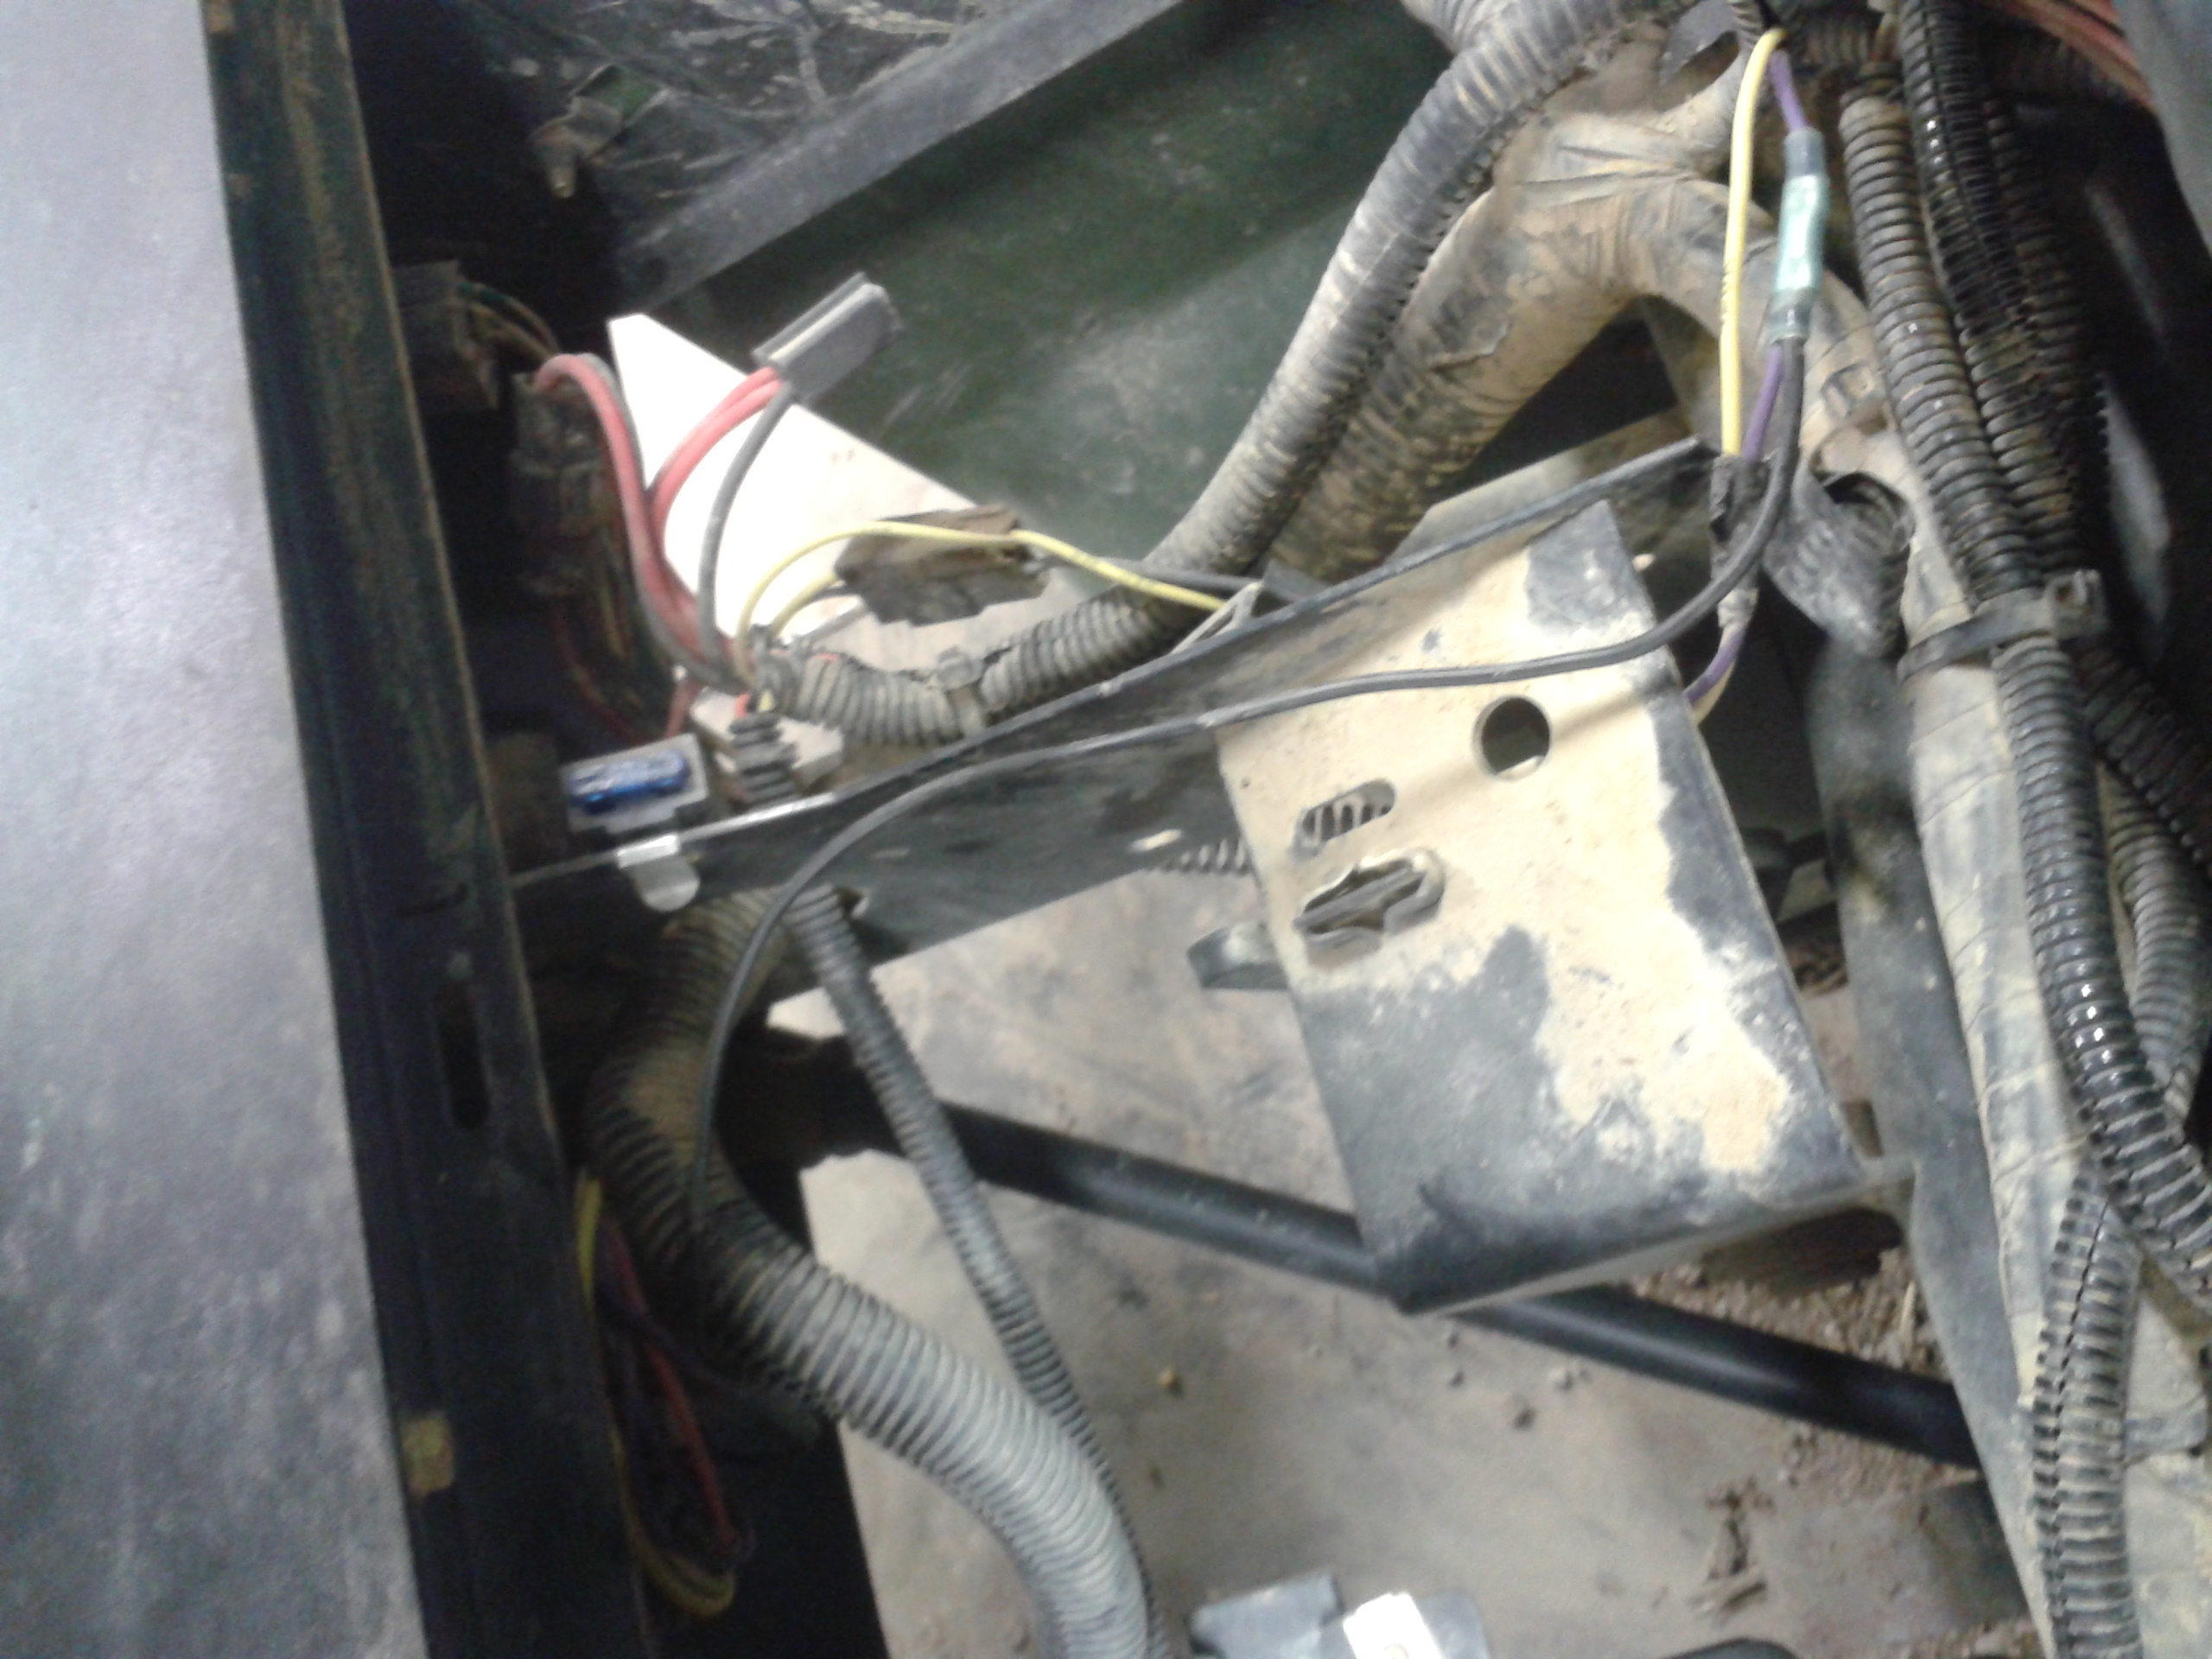 470d1398005196 825i brake pedal start mod 20140415_203413 825i brake pedal start mod john deere gator forums john deere 825i wiring diagram at honlapkeszites.co